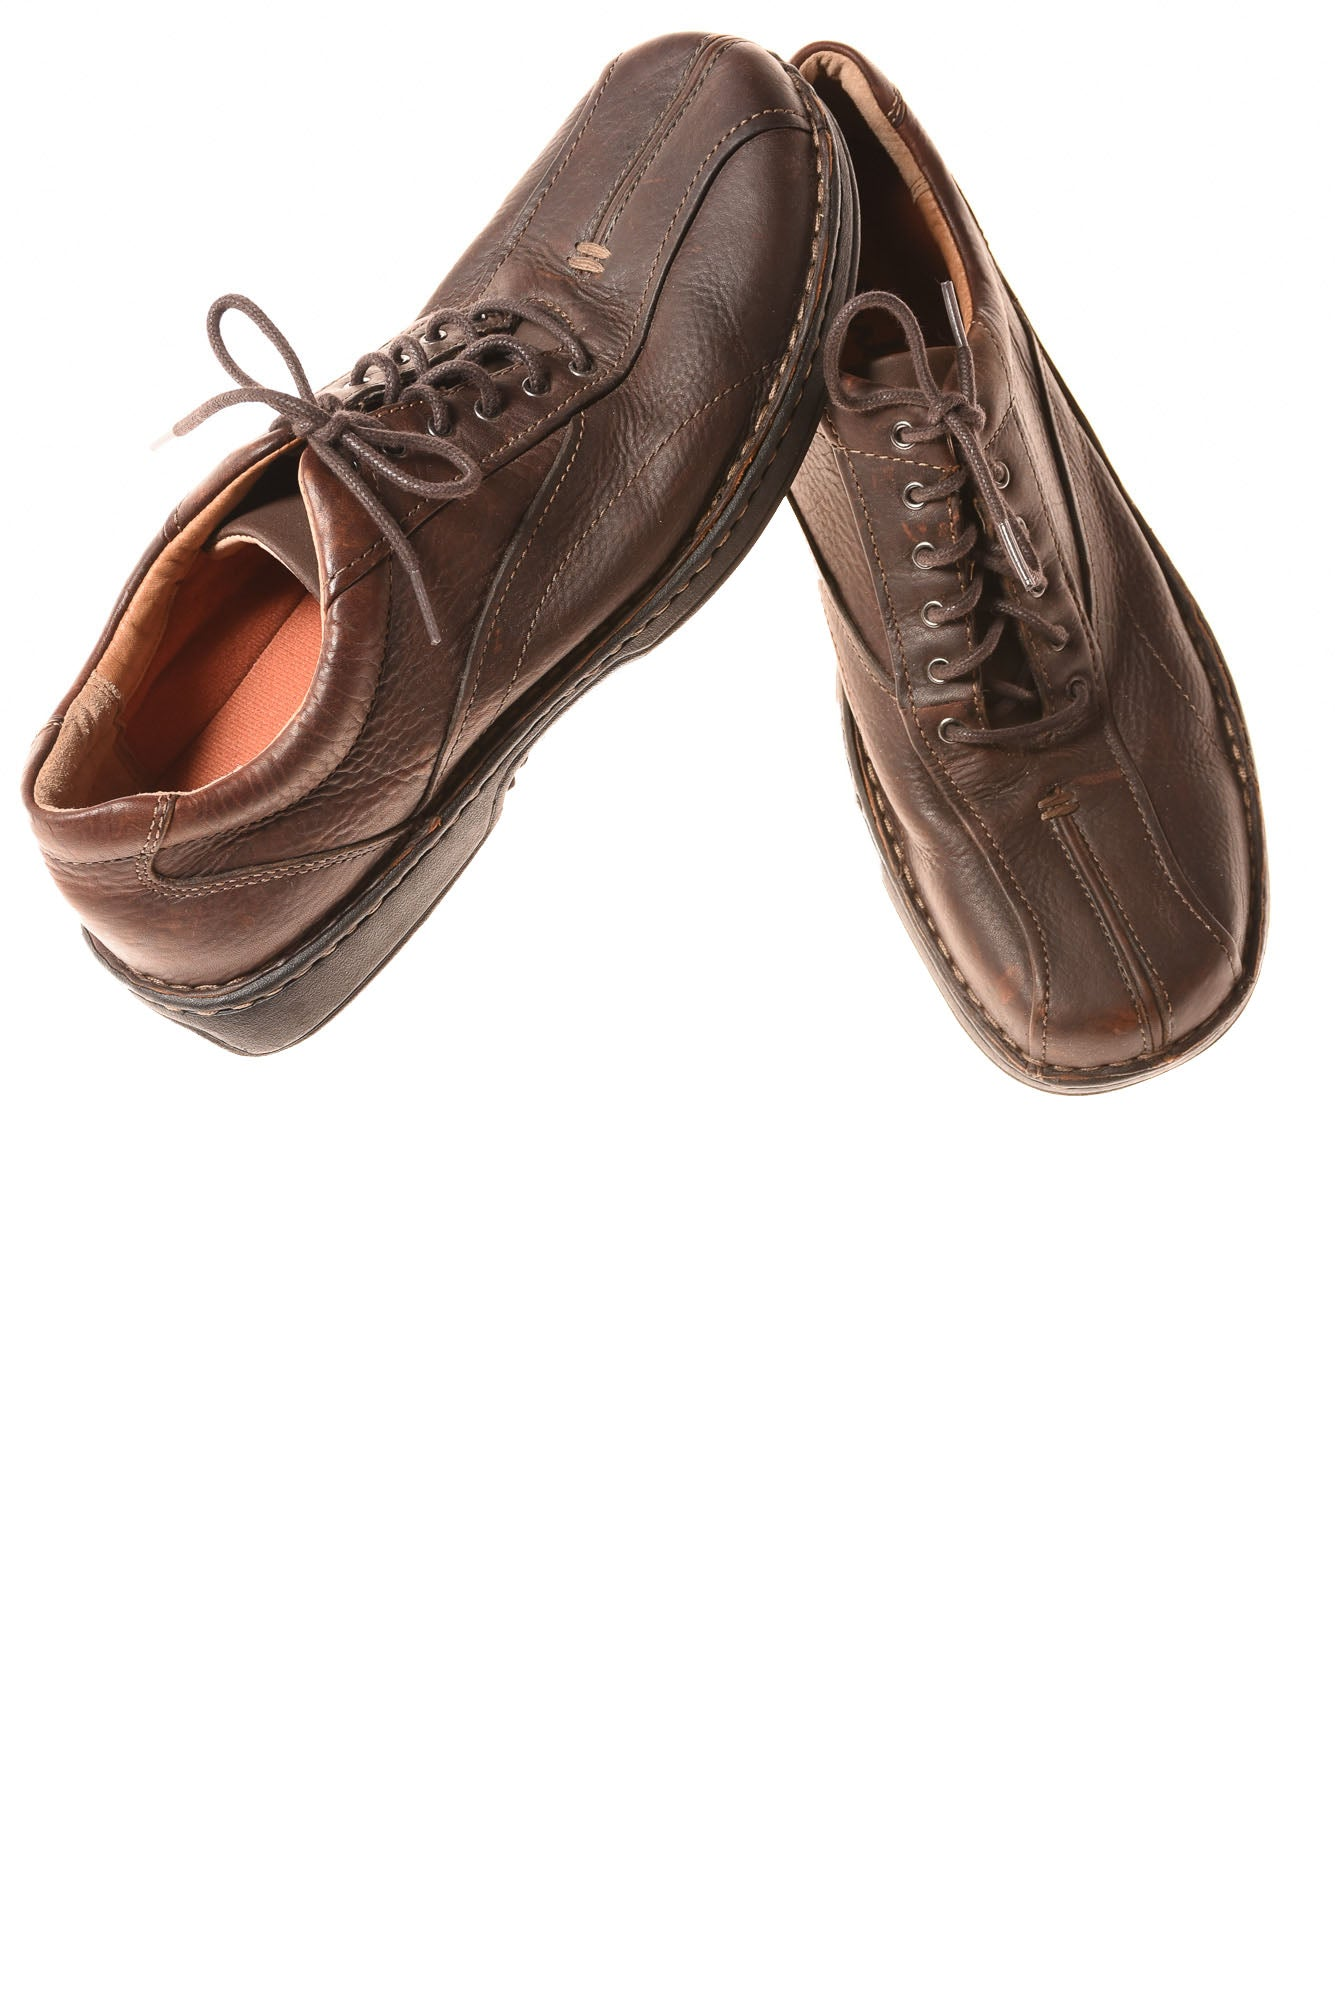 803009c7c4aee0 USED Clarks Men s Shoes 12 Brown - Village Discount Outlet